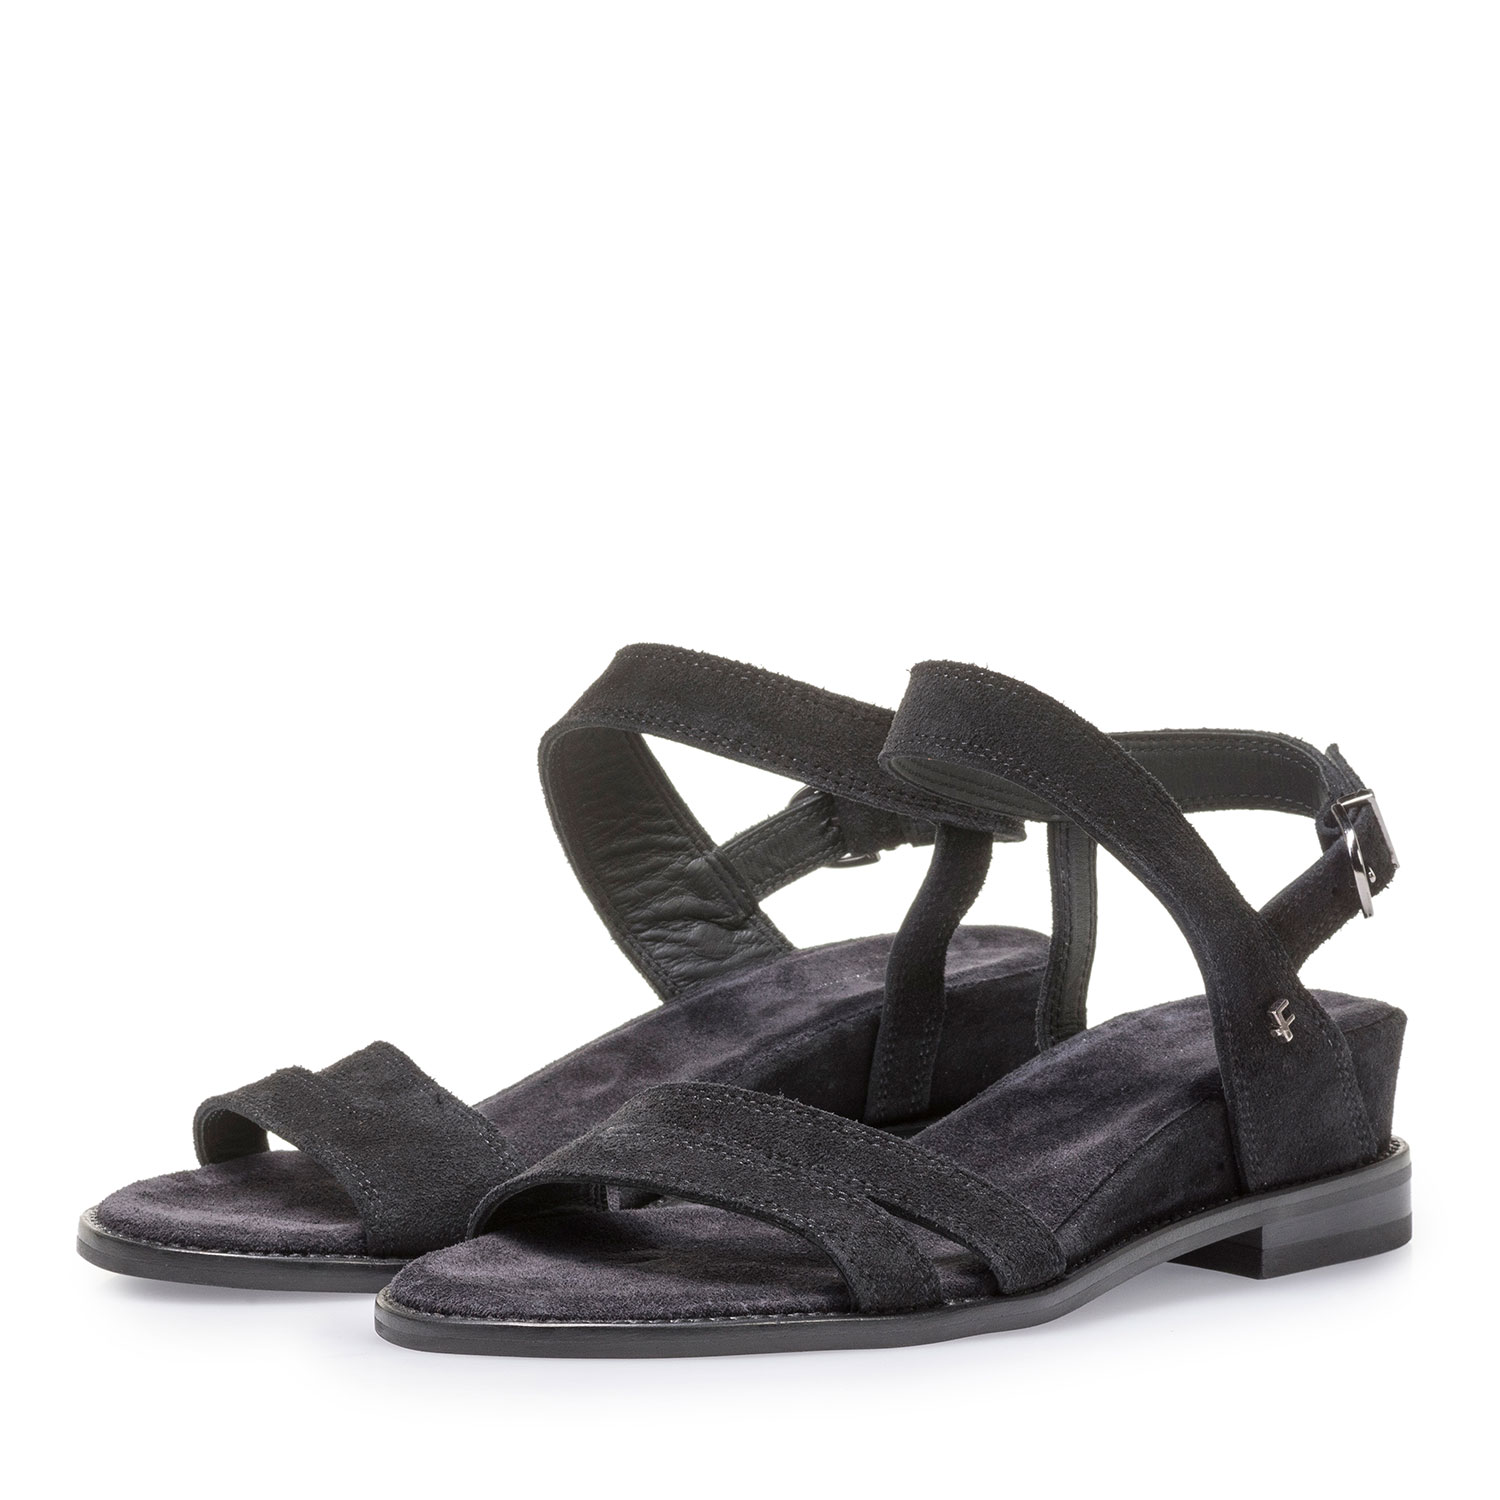 85931/00 - Black suede leather sandals